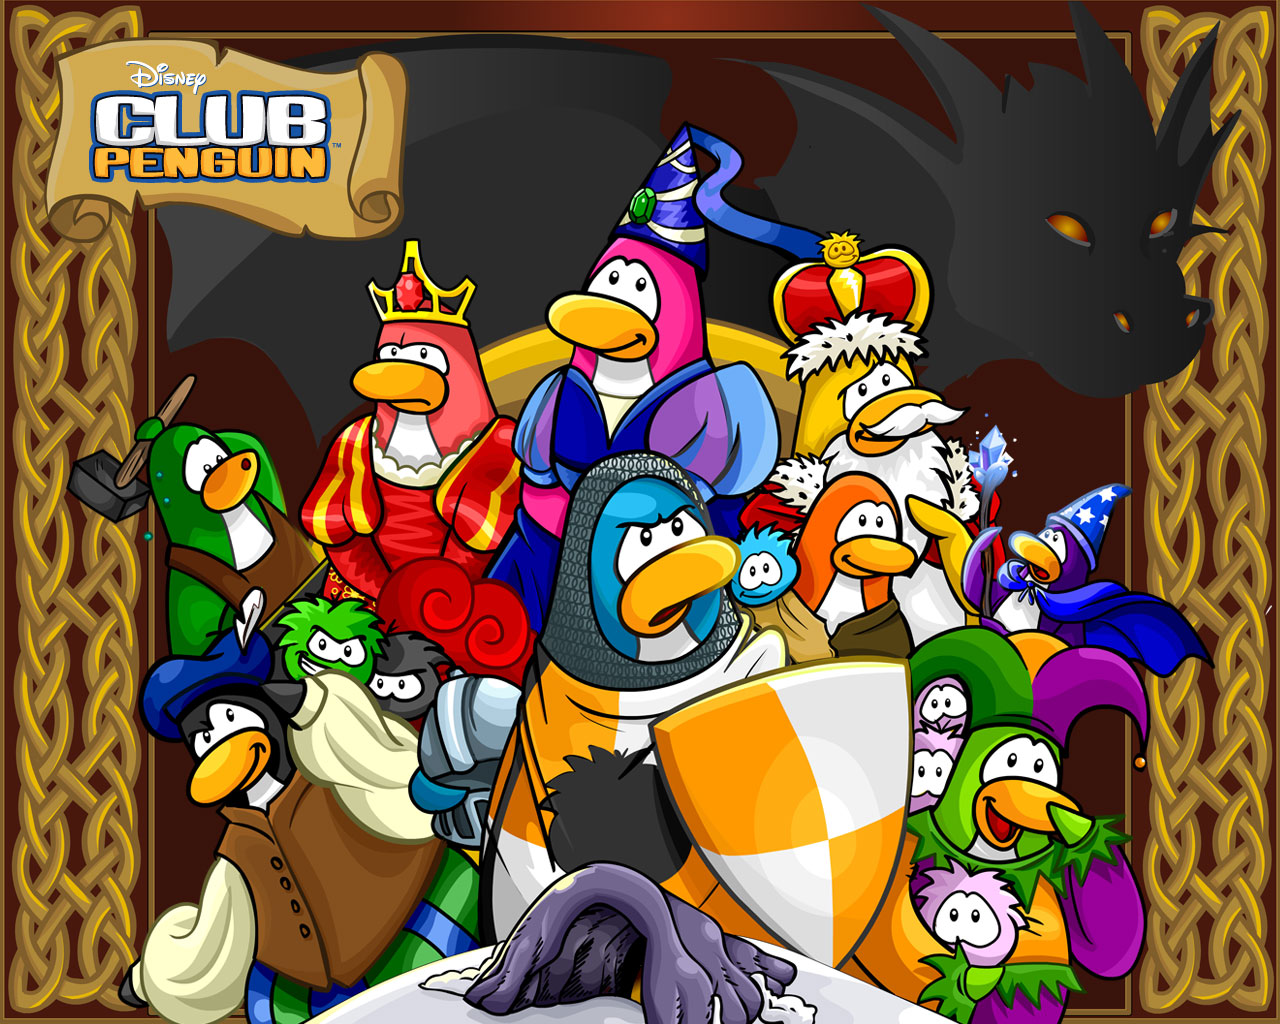 http://spq96clubpenguincheats.files.wordpress.com/2008/07/cpwallpaper1.jpg